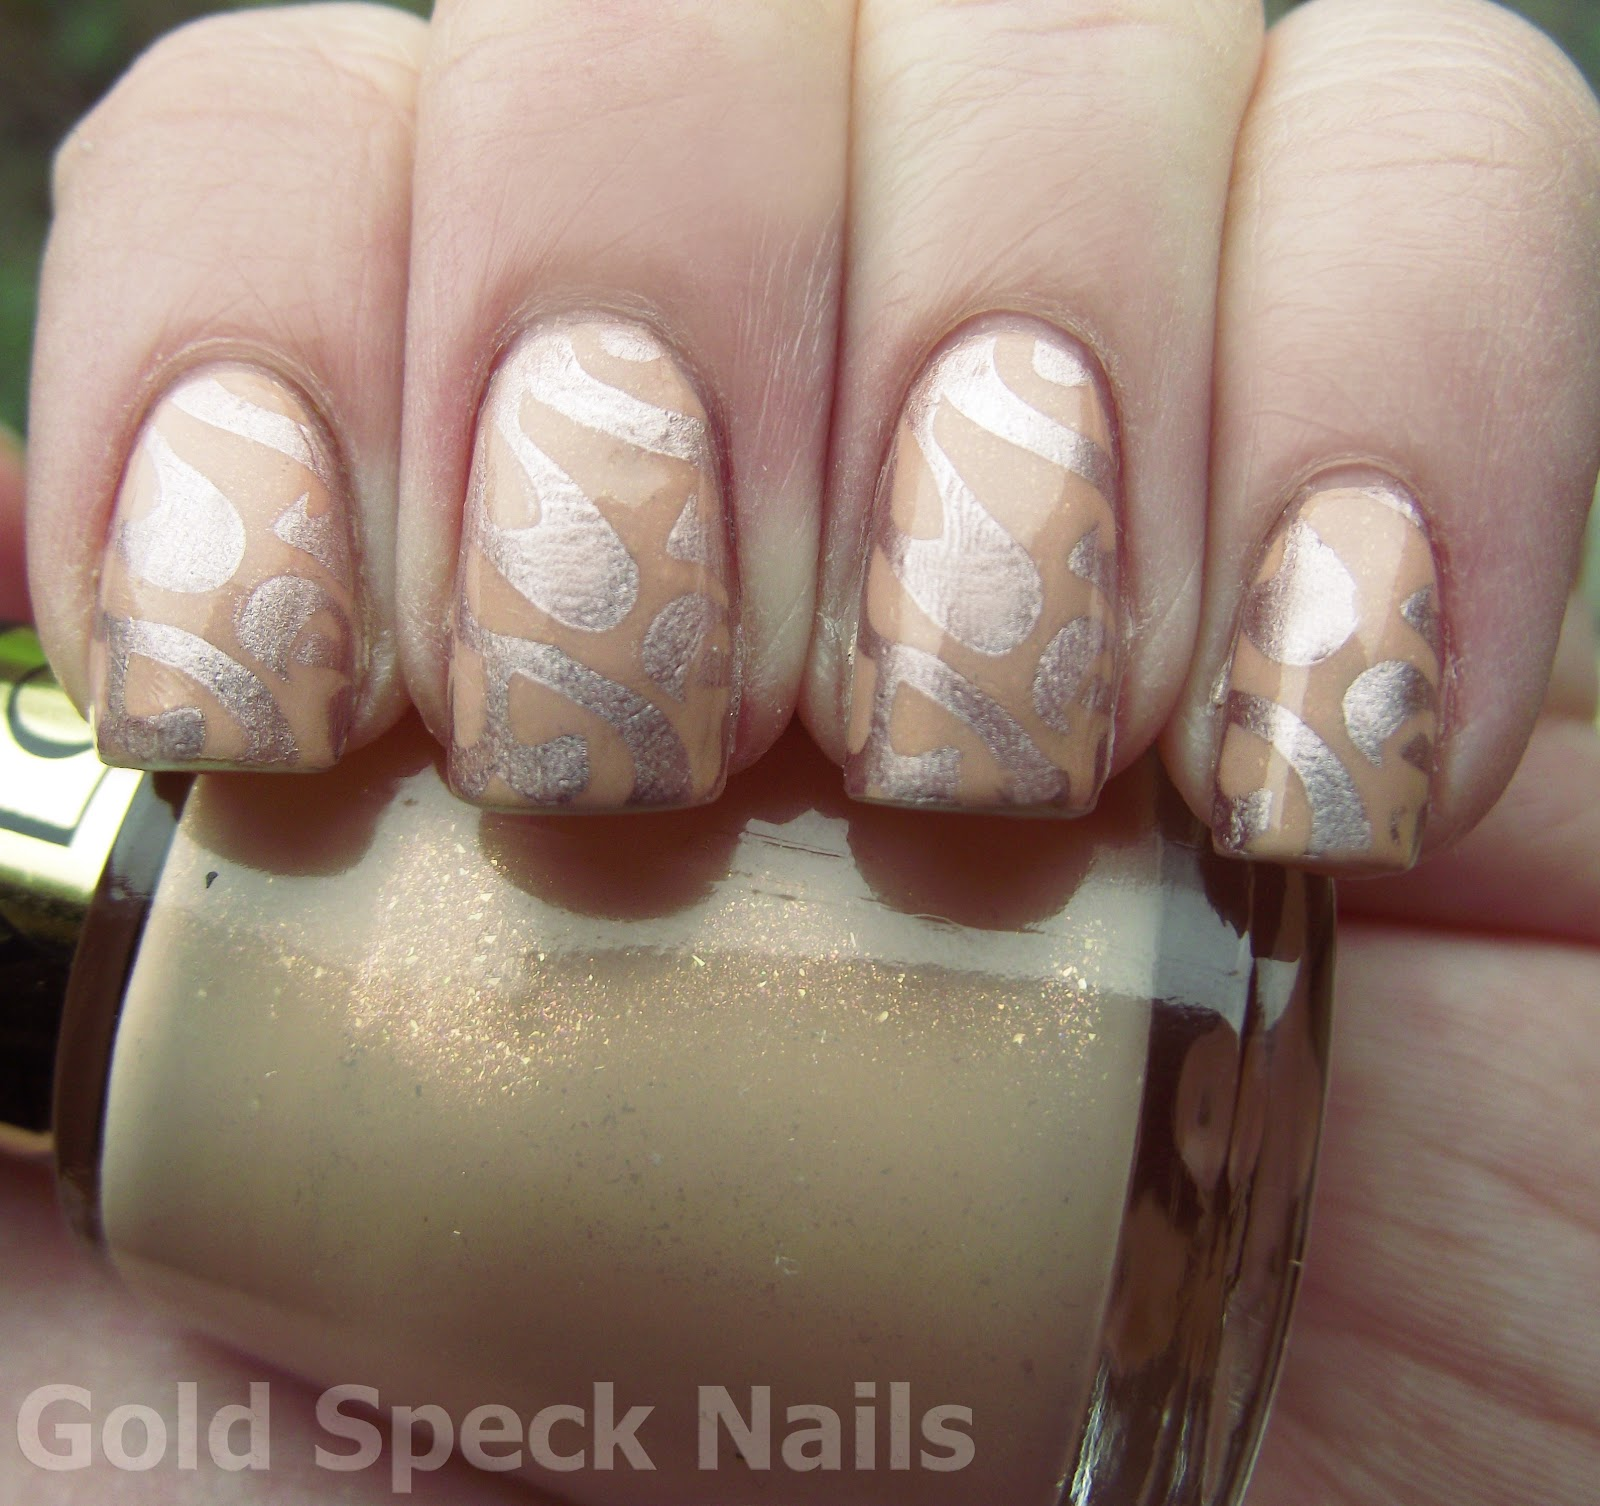 Gold Speck Nails: More Interview Nails